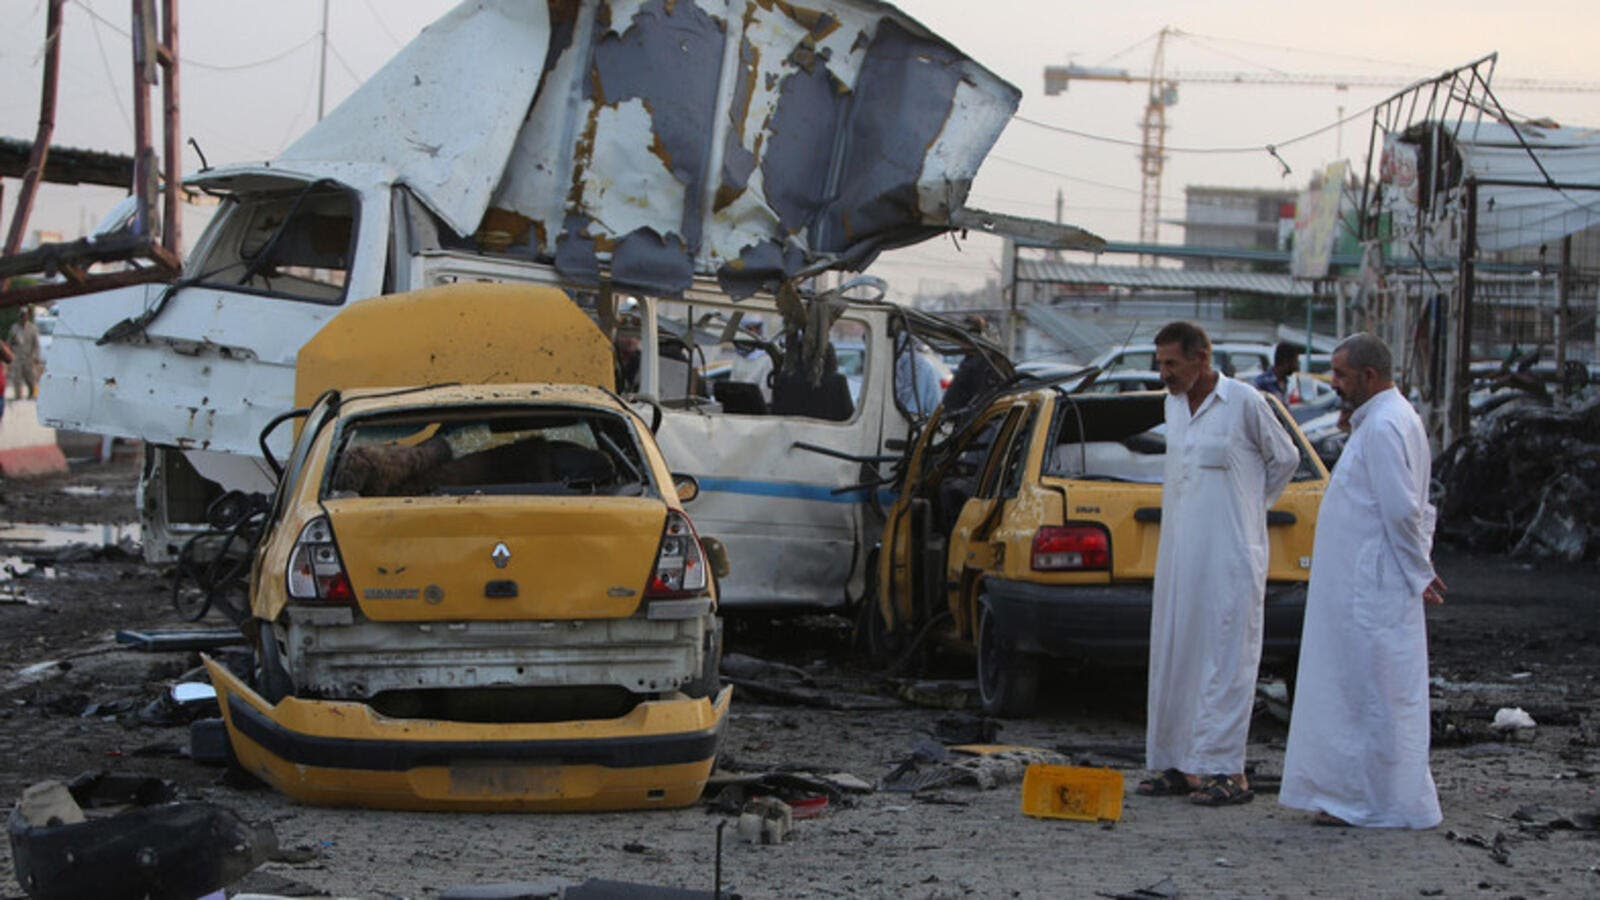 Two men inspect the aftermath of a Baghdad suicide bombing. (AFP/File)